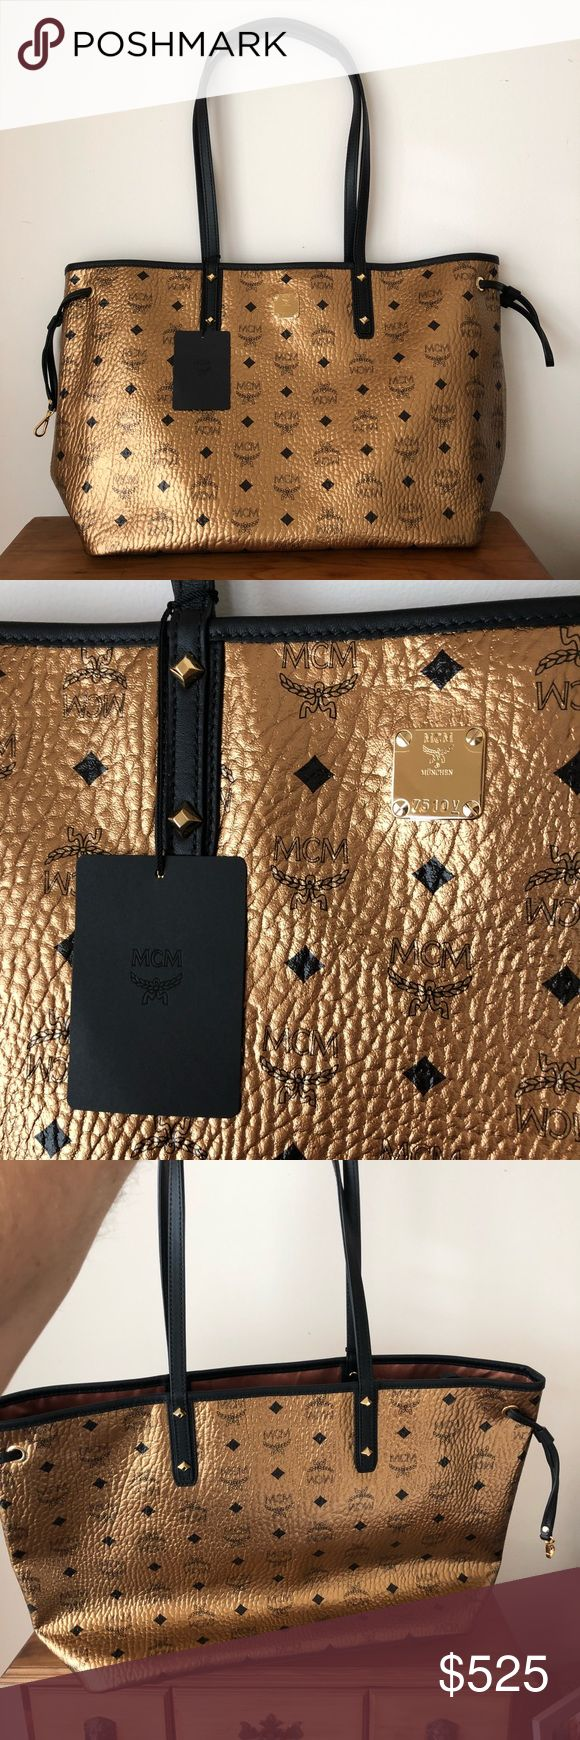 """NEW MCM metallic leather tote 100% authentic with dust bag and authenticity cards. Black and metallic gold pebbled leather. Very hard to find in this color!!! 18"""" length 11"""" height 6.5"""" width. 10"""" strap drop. Price pretty firm. MCM Bags Totes"""